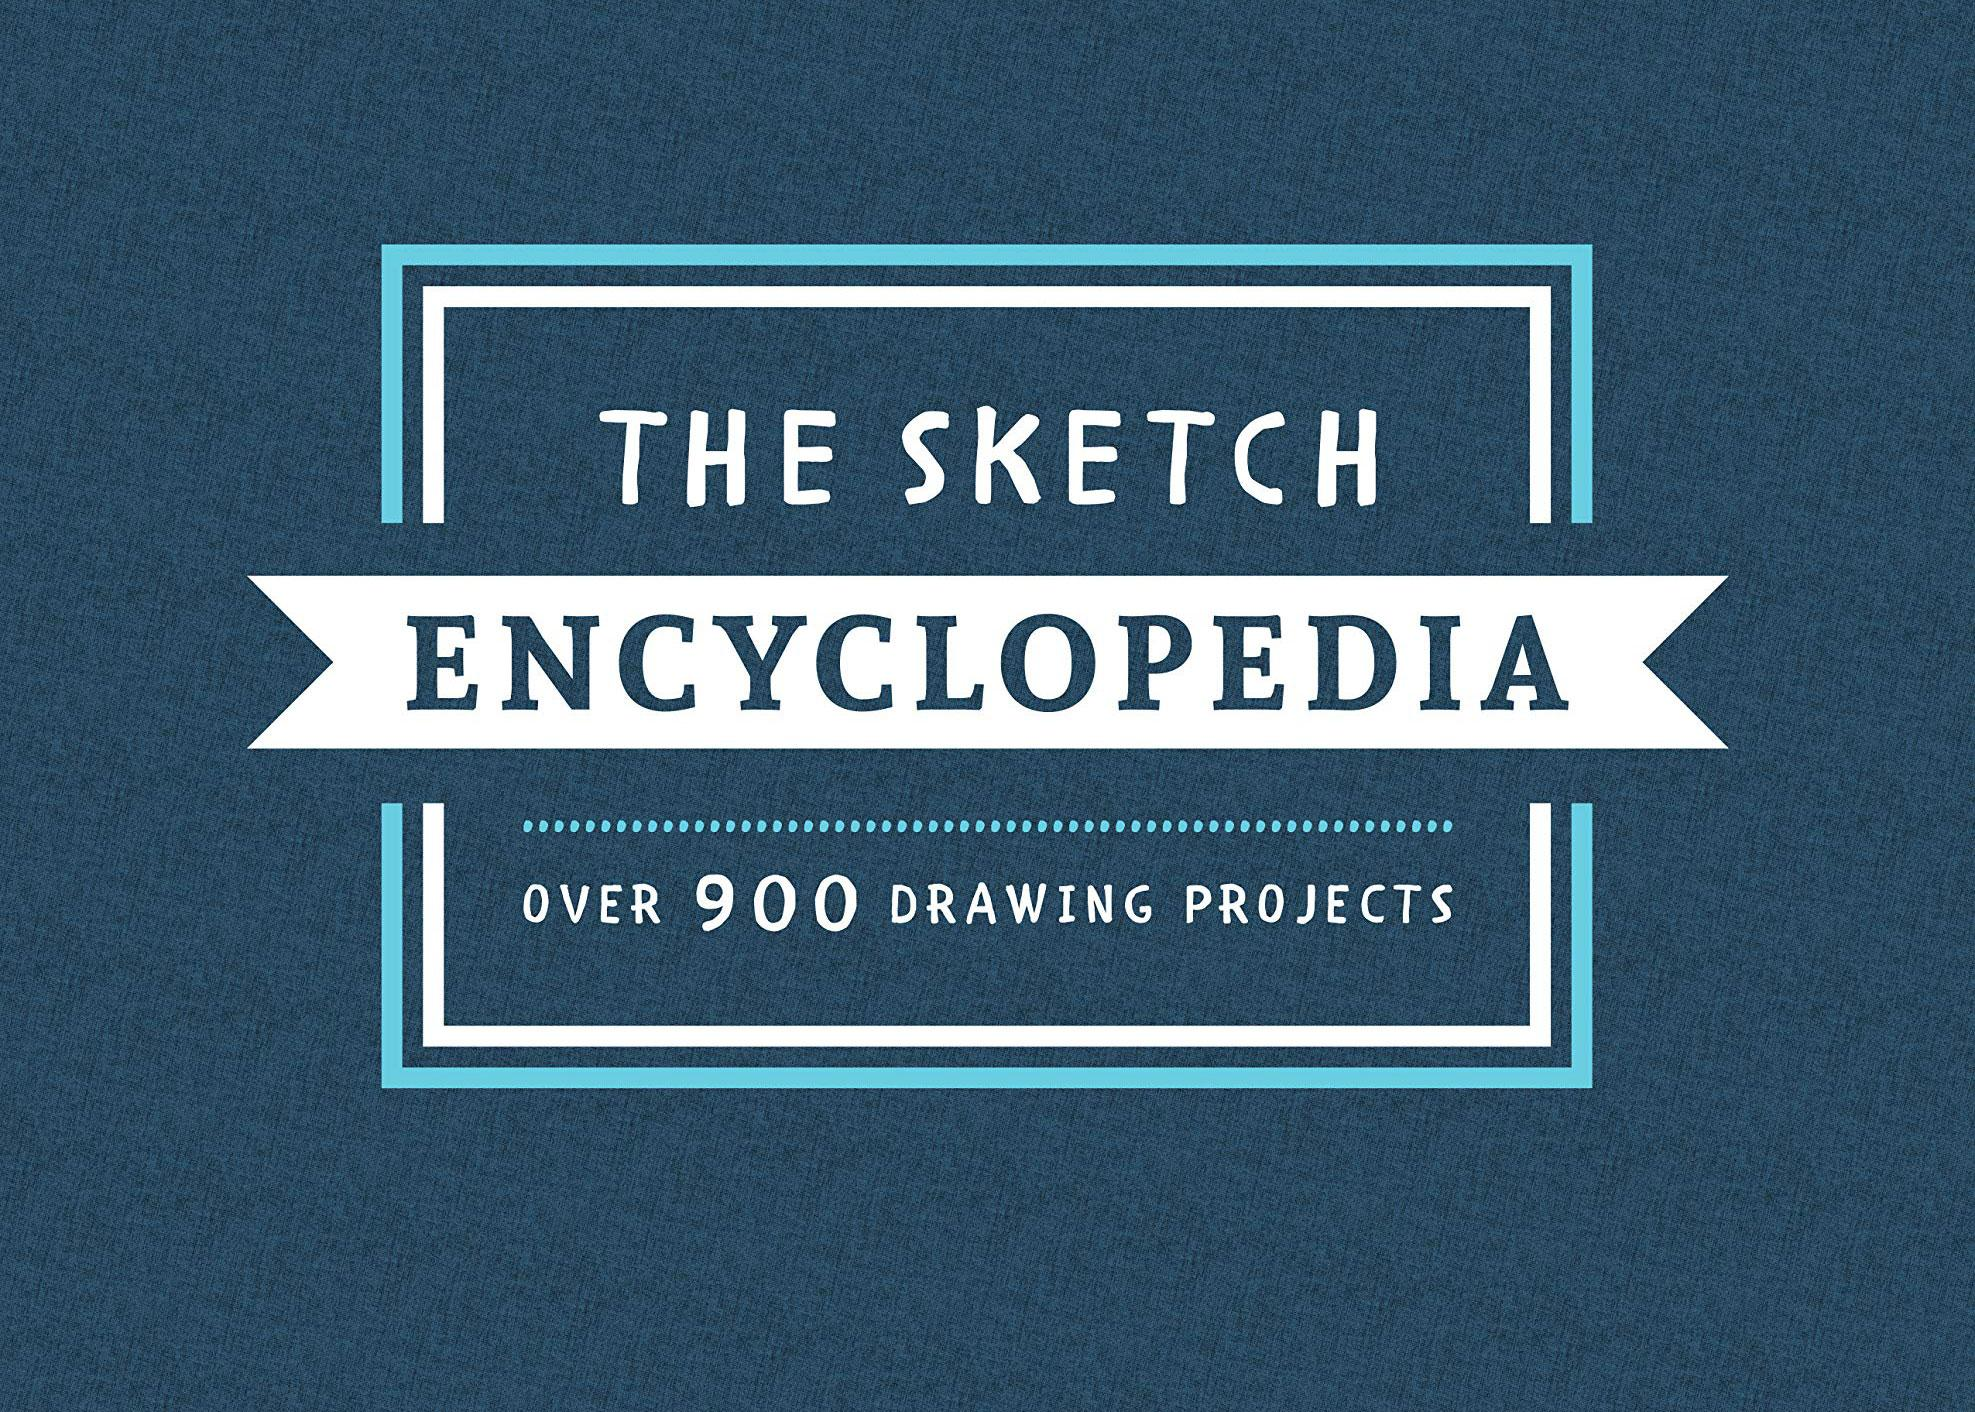 Best drawing books: The Sketch Encyclopedia